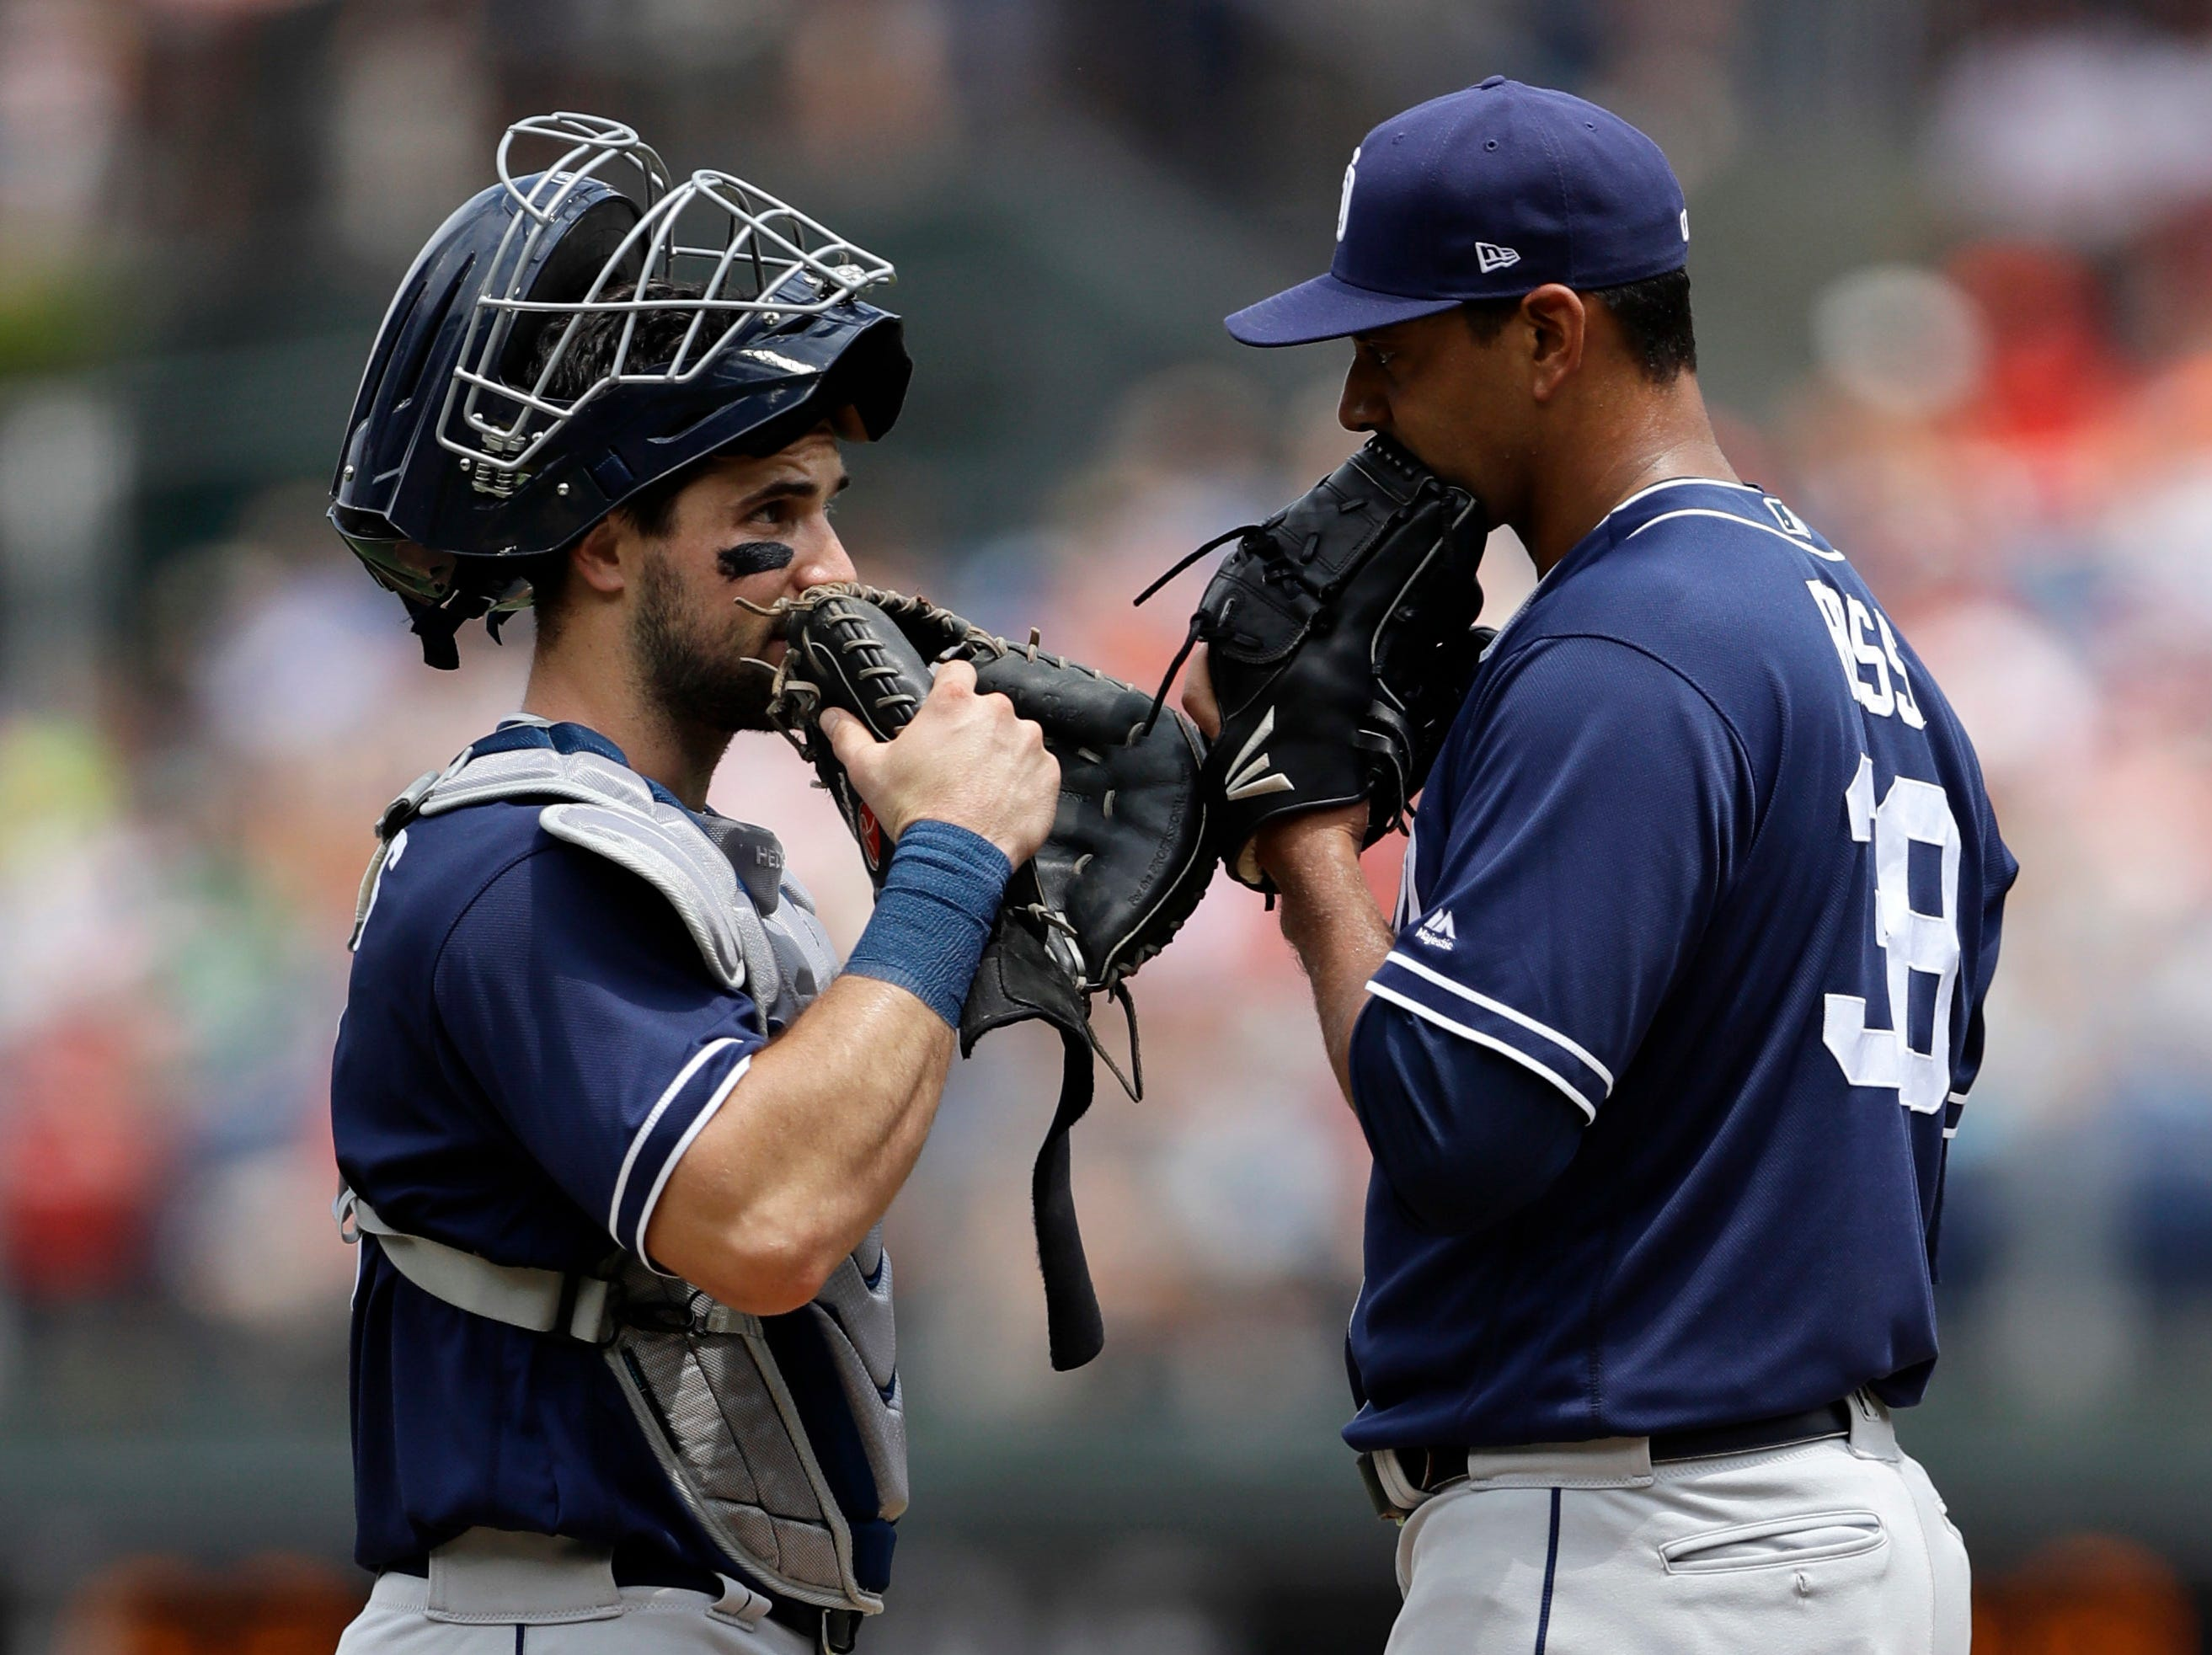 San Diego Padres catcher Austin Hedges, left, and starting pitcher Tyson Ross talk on the mound during the first inning of the first game in a doubleheader against the Philadelphia Phillies, Sunday, July 22, 2018, in Philadelphia.